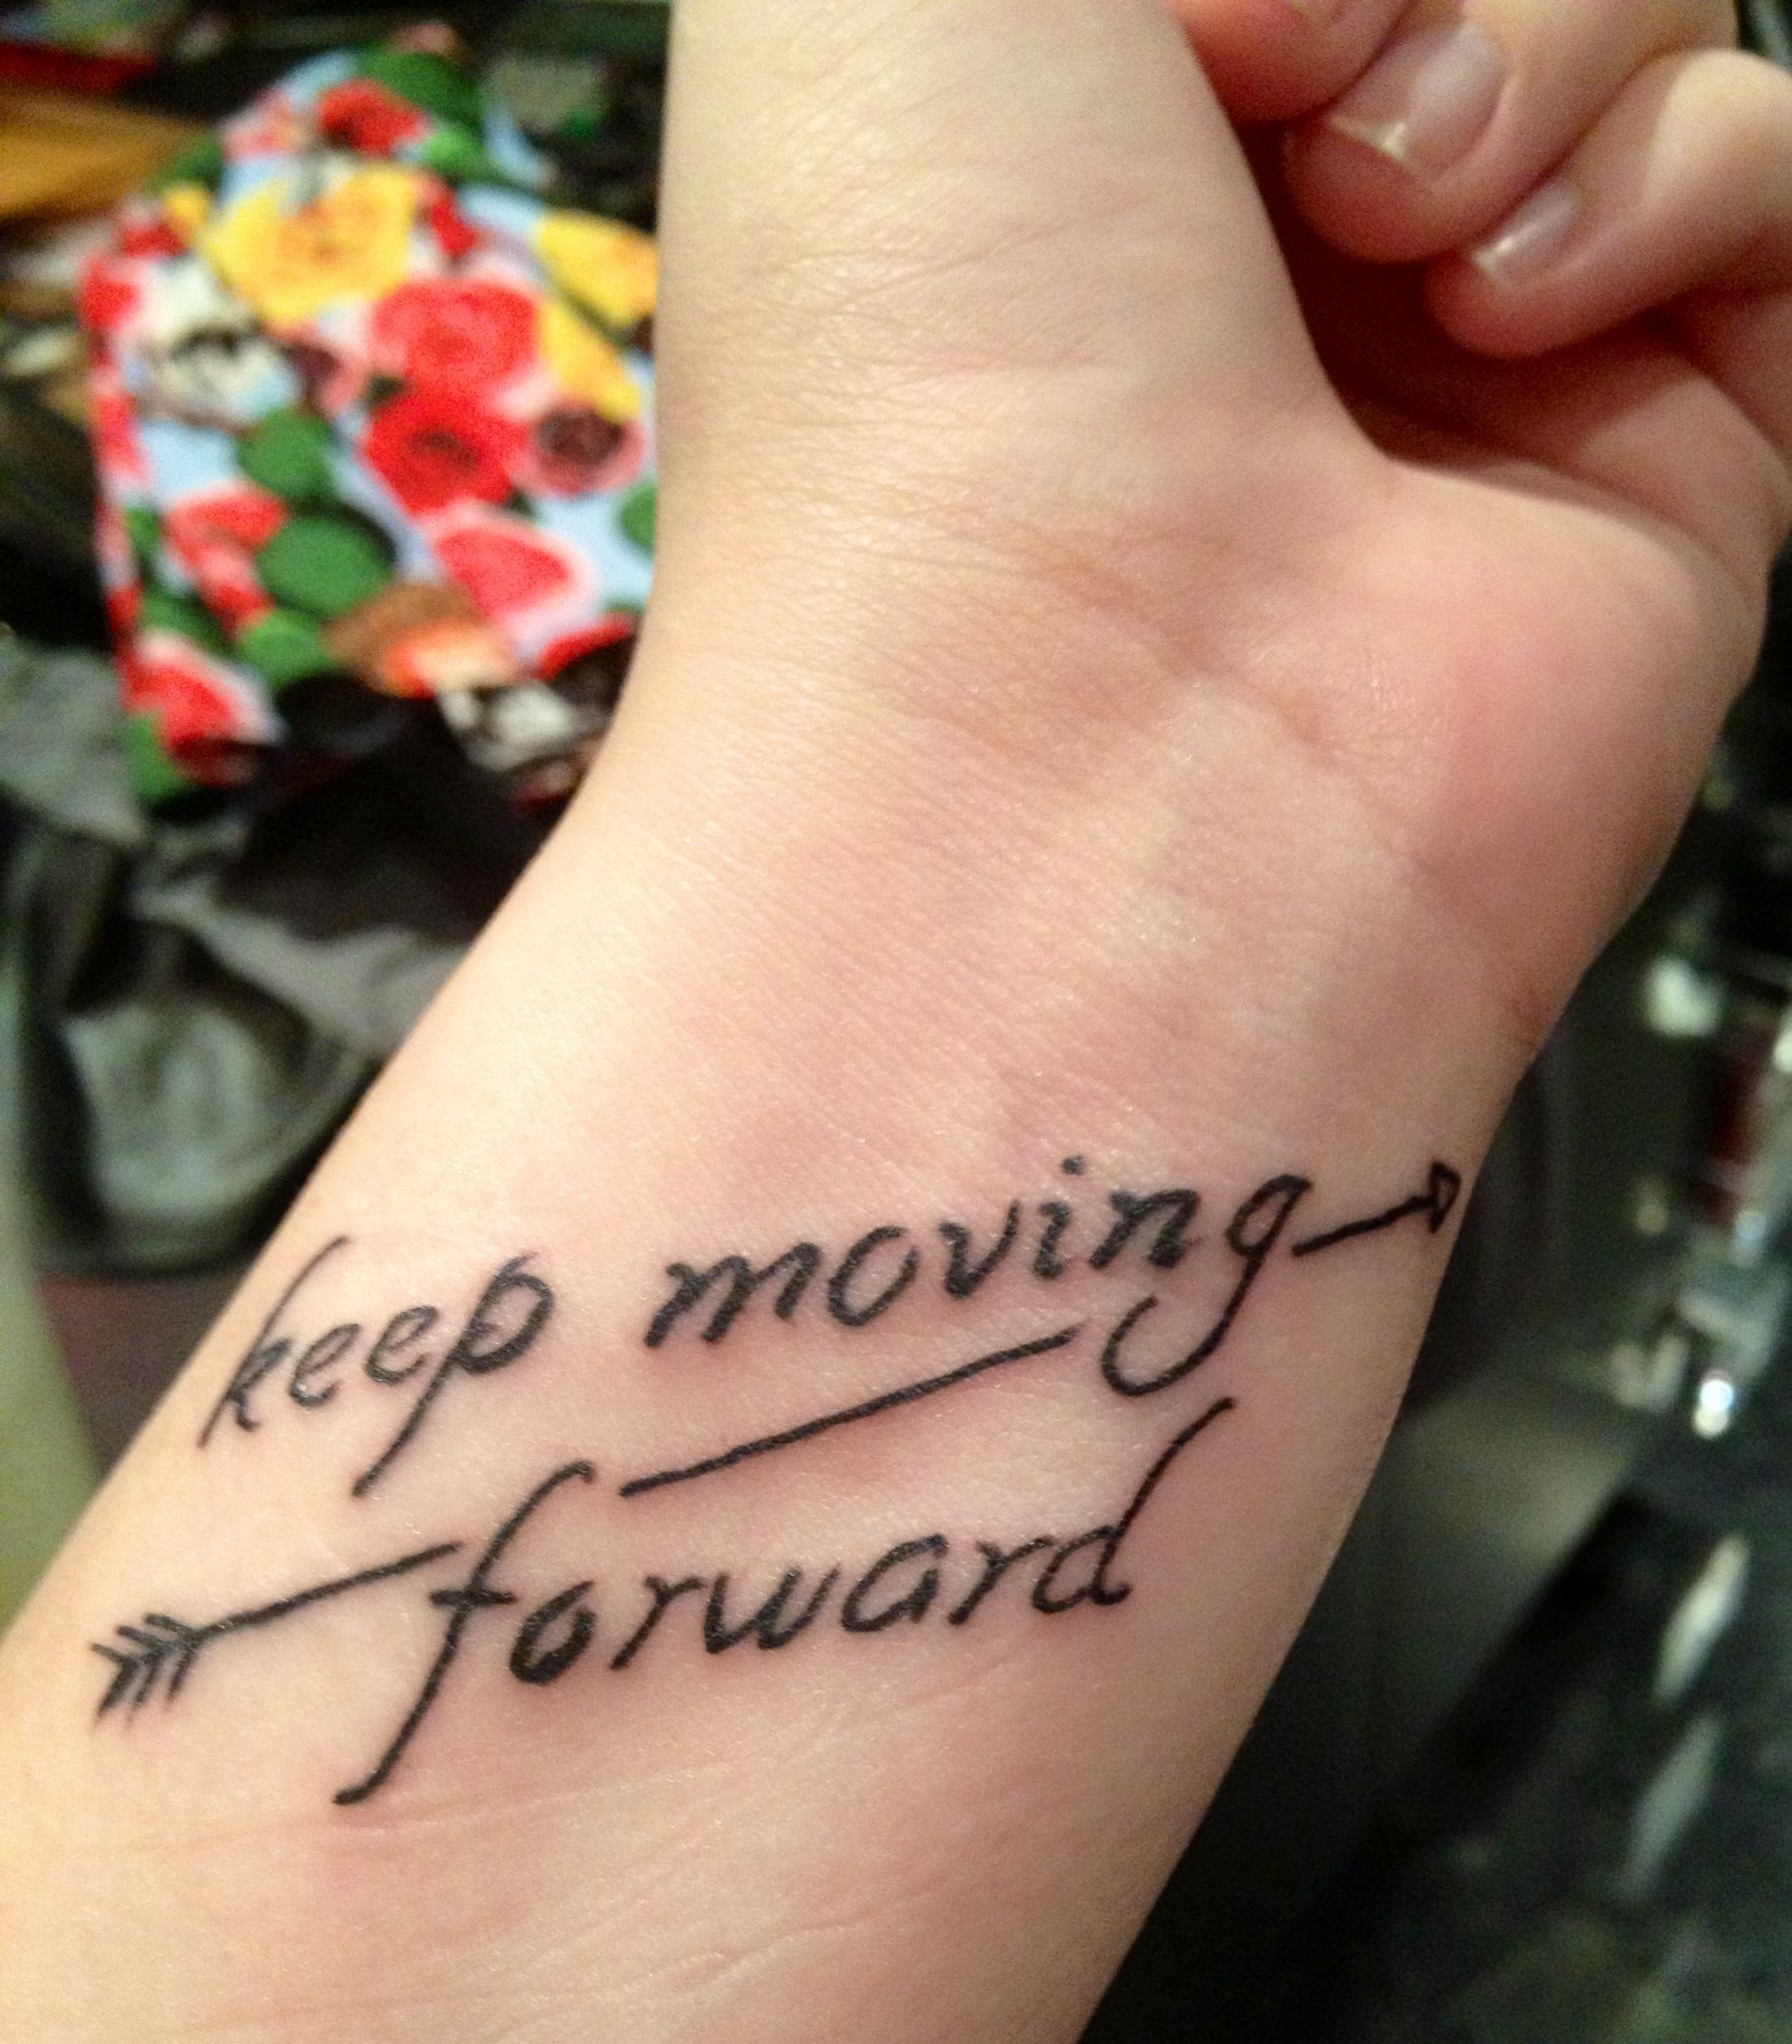 My Newest Tattoo!!!! I LOVE IT!!!! It Helps To Remind Me